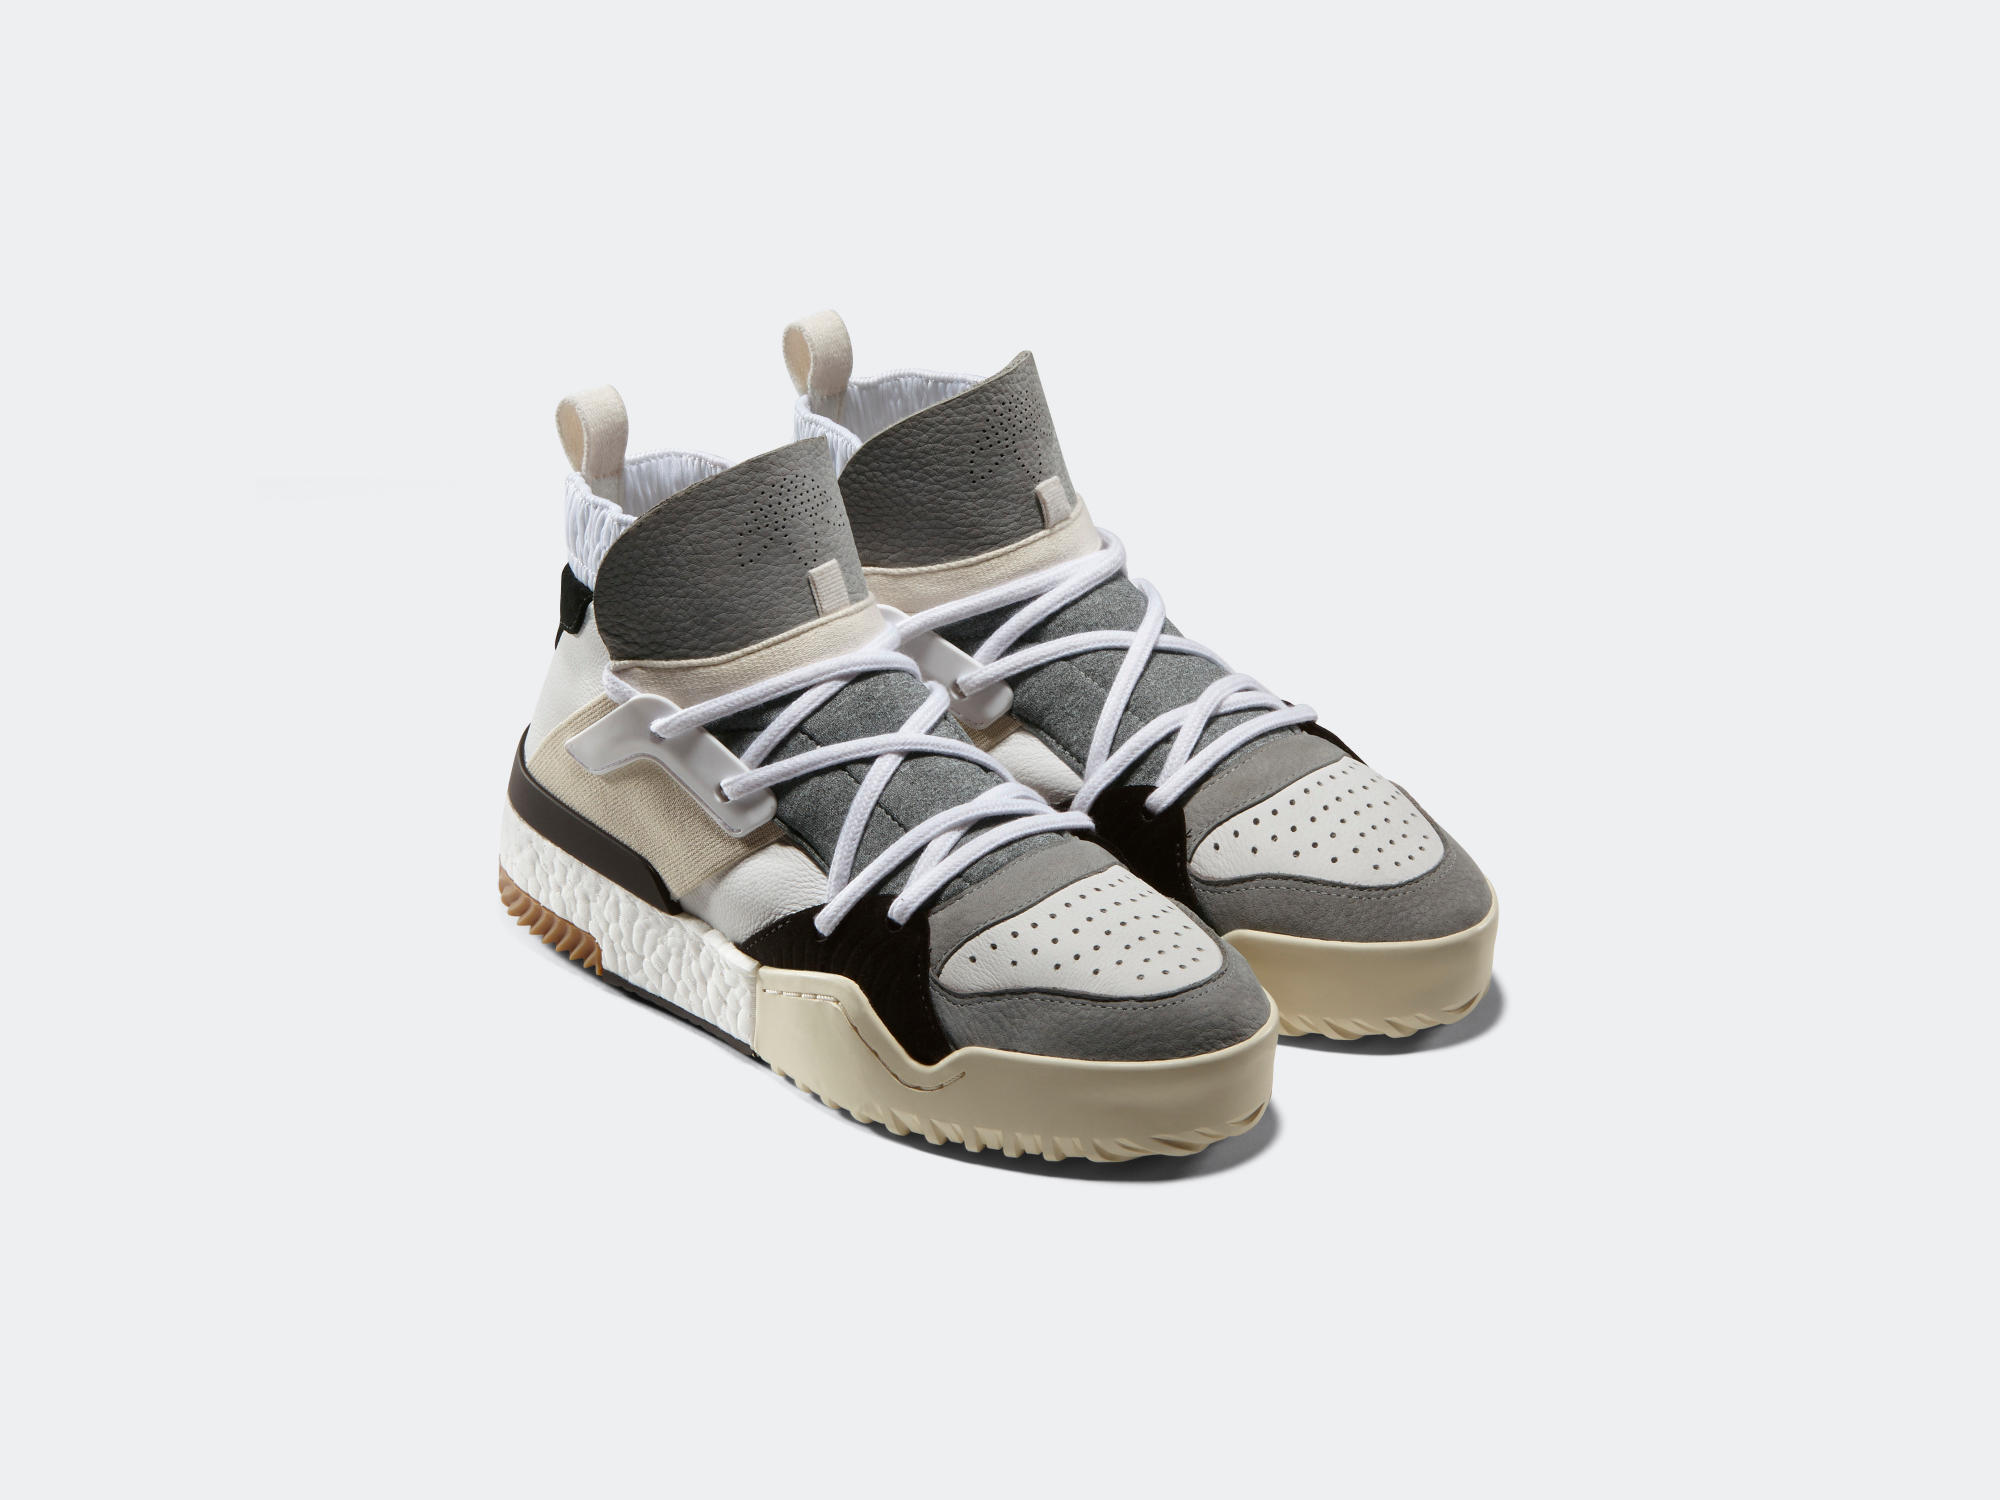 best service 833a2 d411b ... Season 2 Drop 2 Alexander Wang x Adidas Originals.